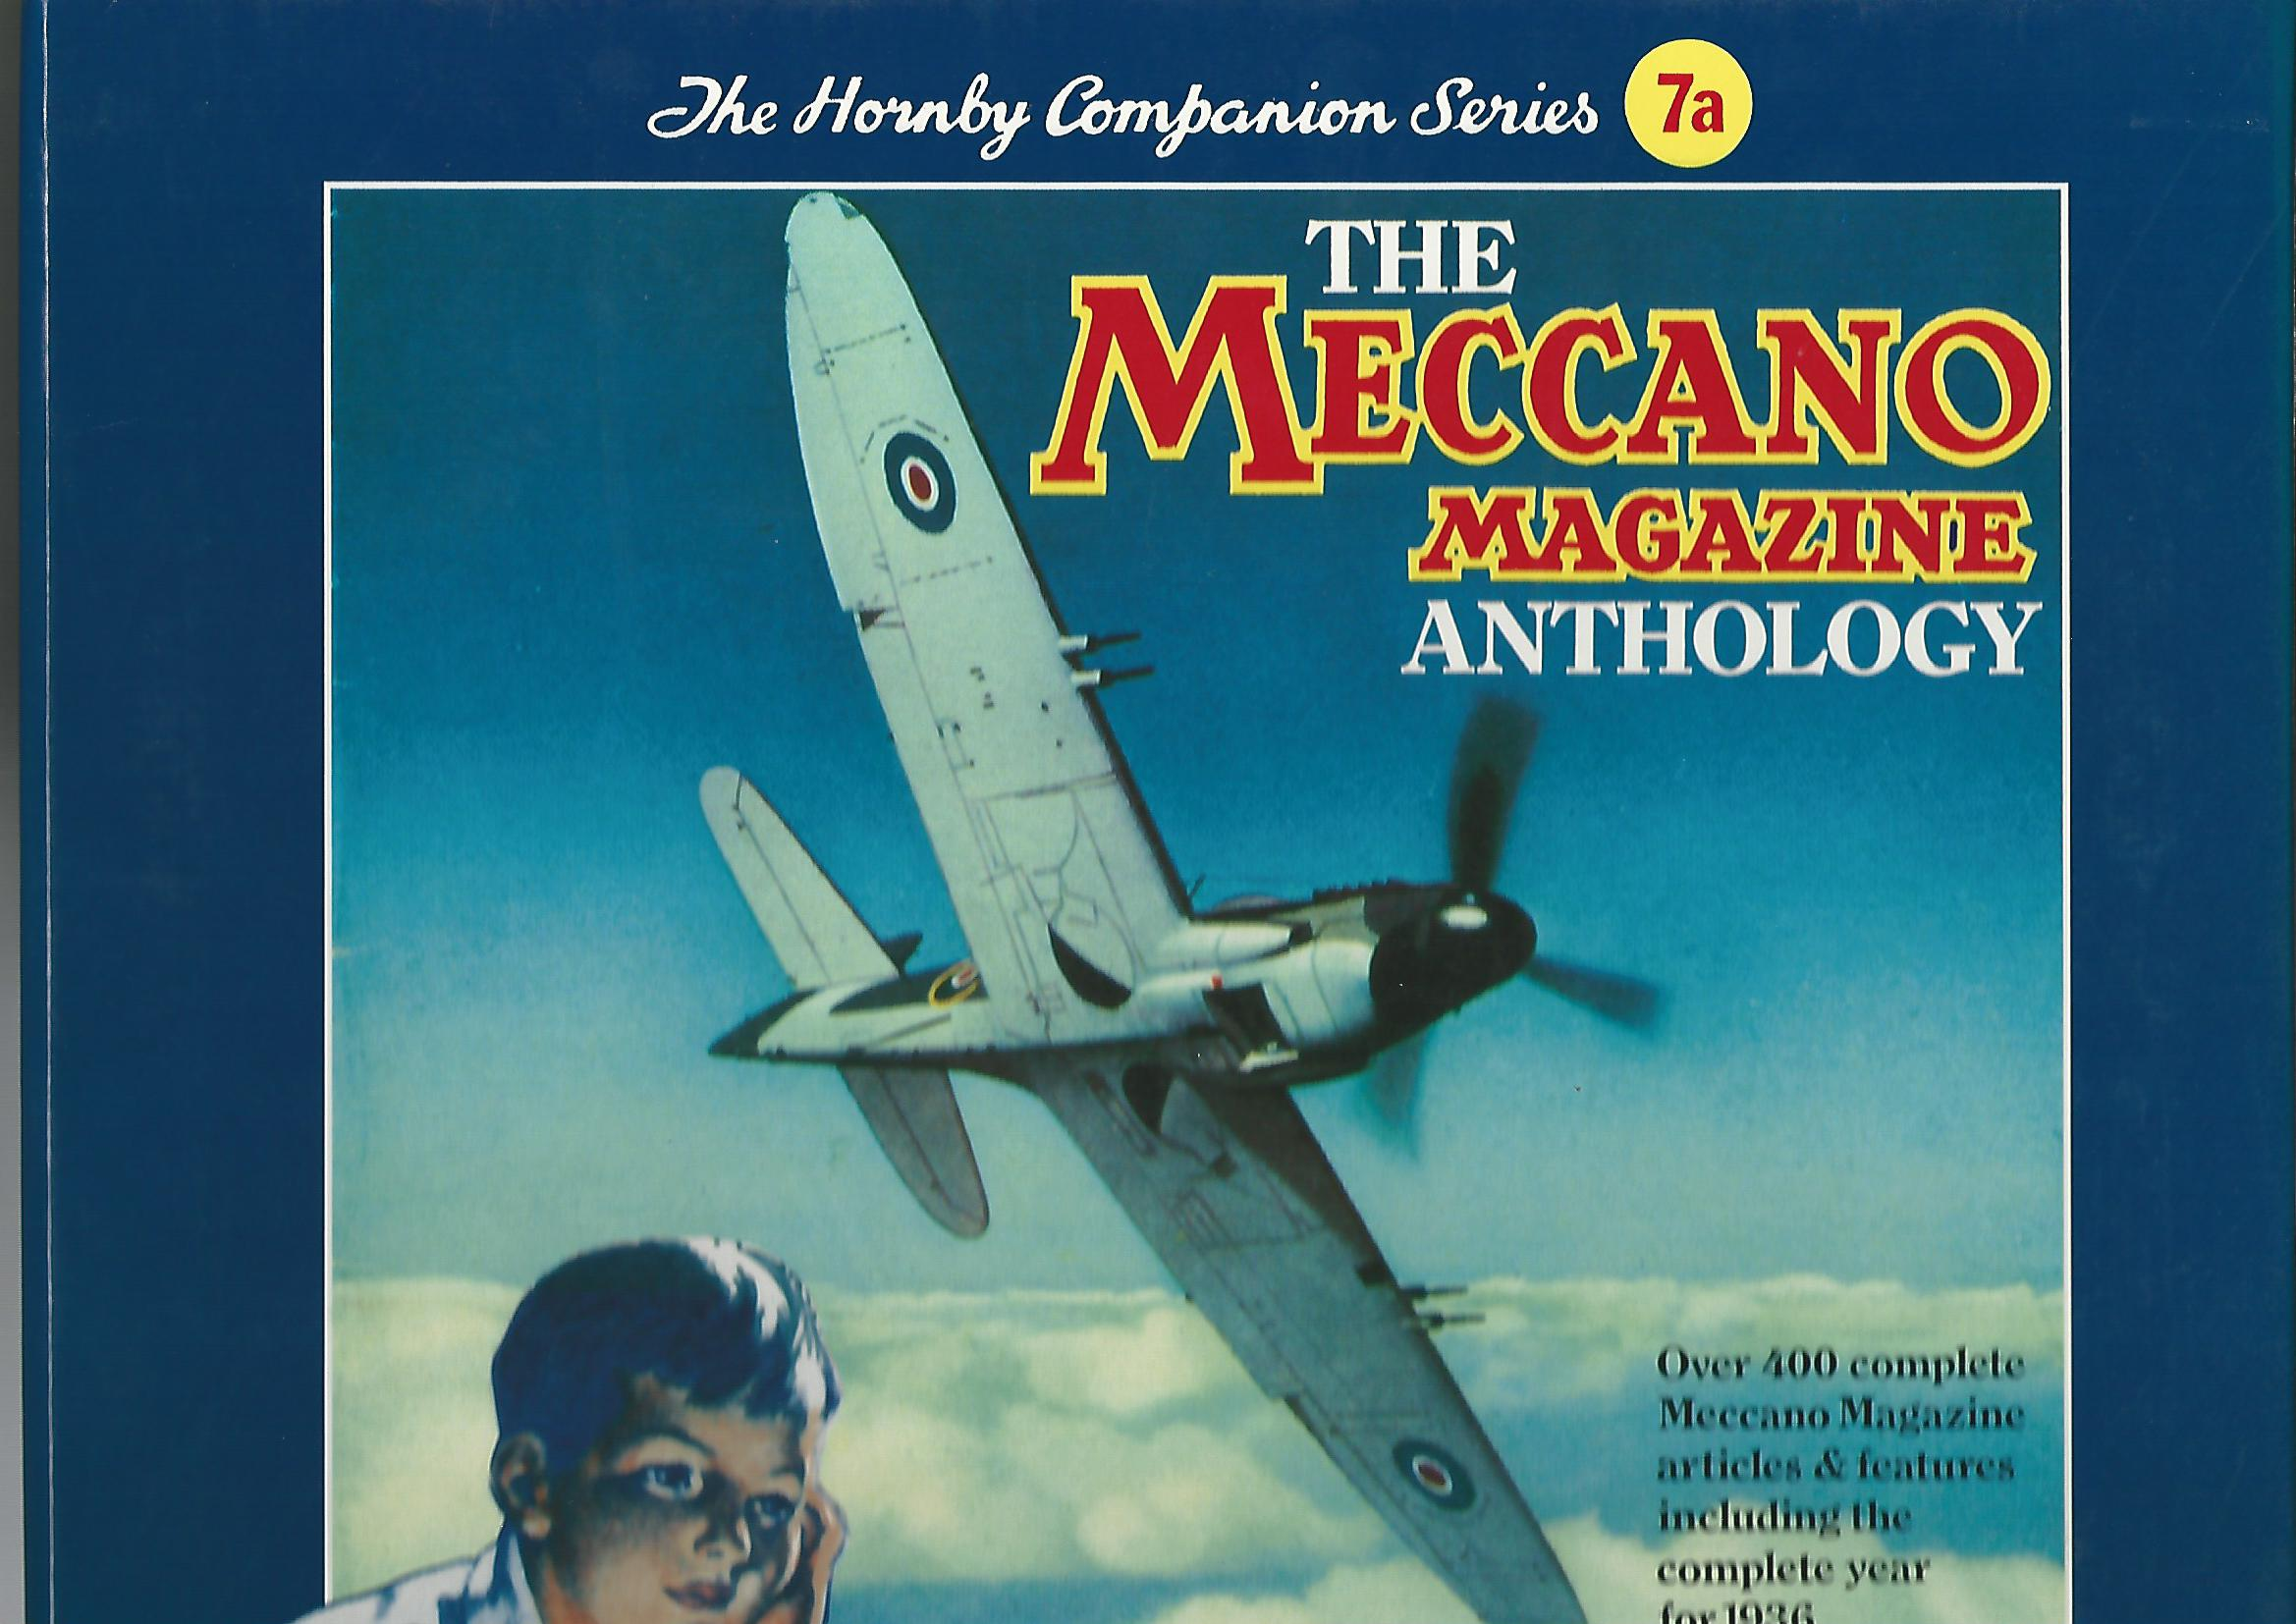 Image for Meccano Magazine Anthology - The Hornby Companion Series 7a.